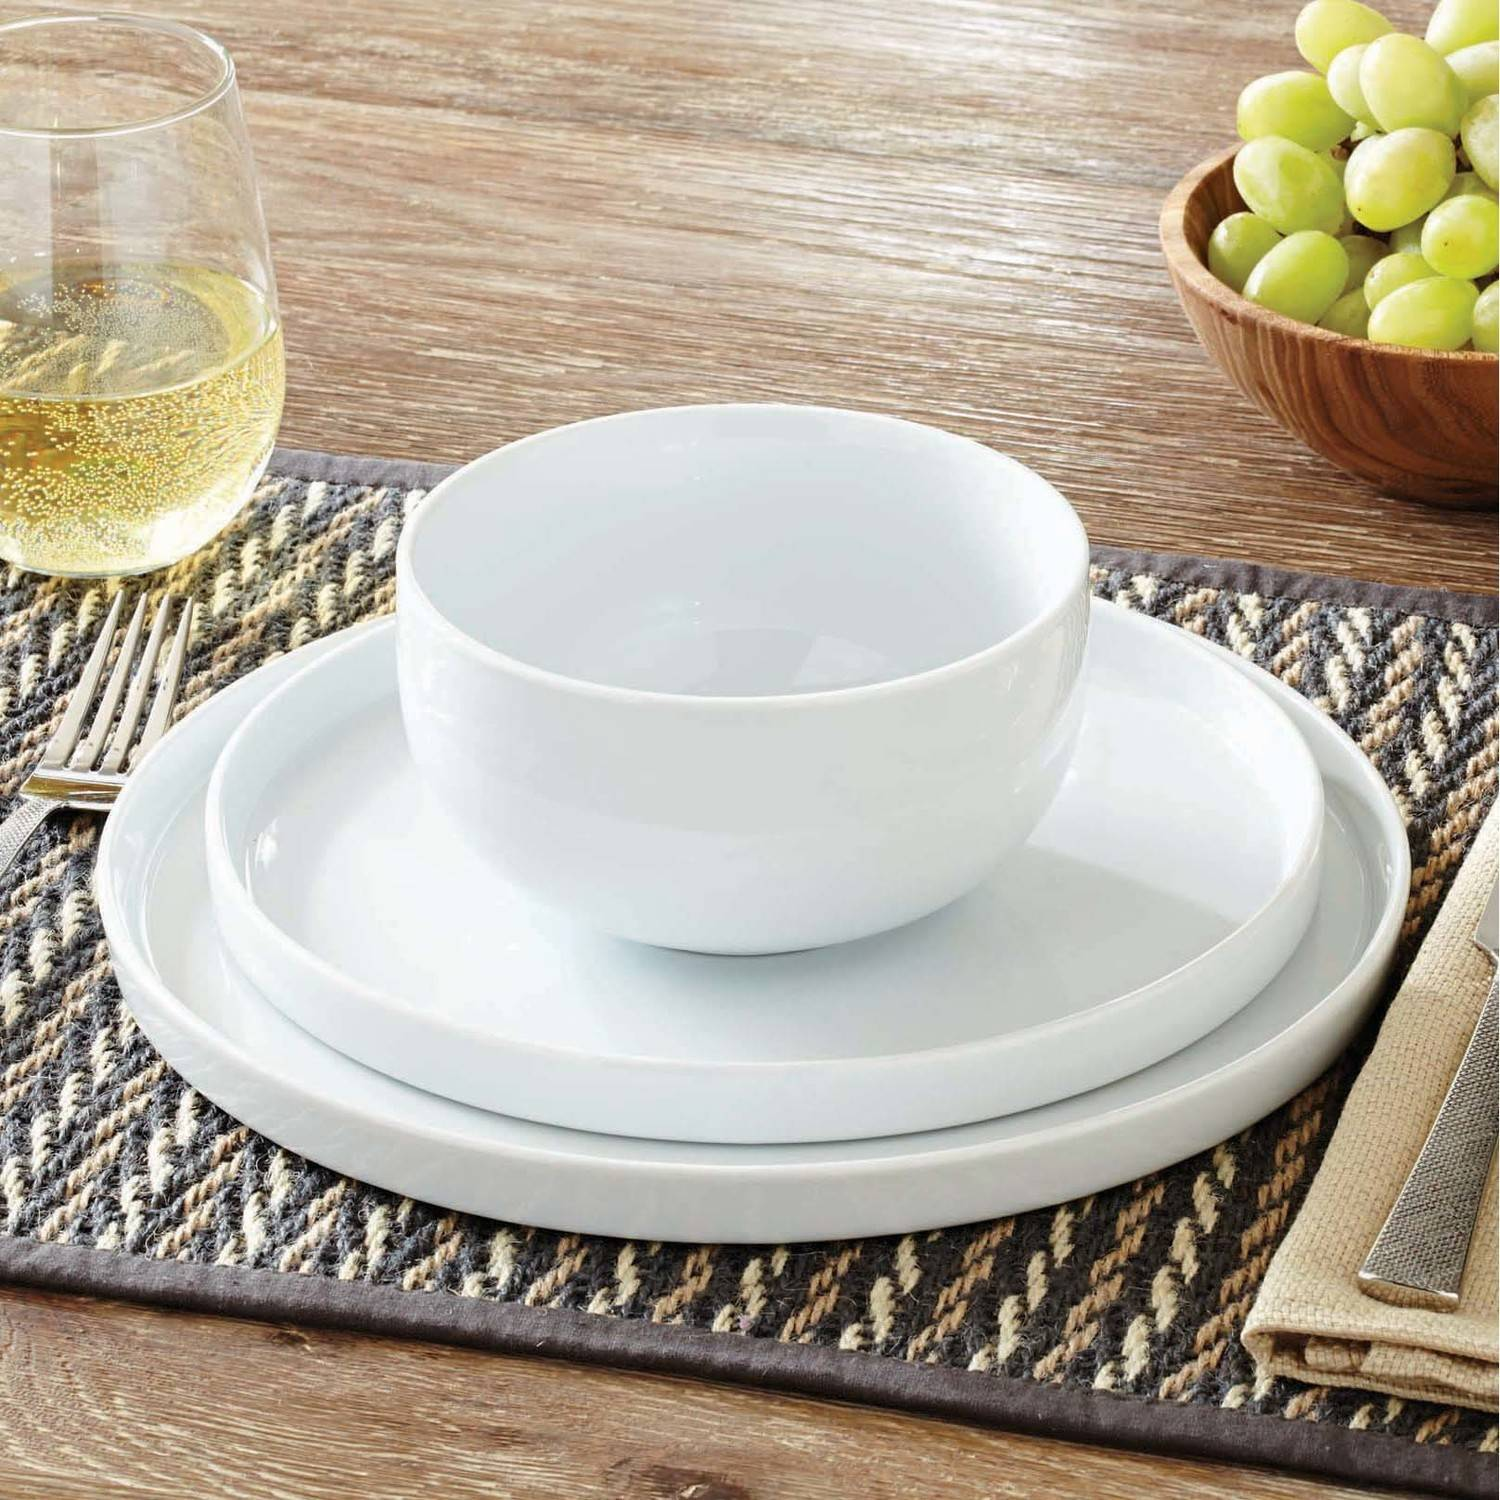 Better Homes And Gardens Modern Rim 12 Piece Dinnerware Set, White